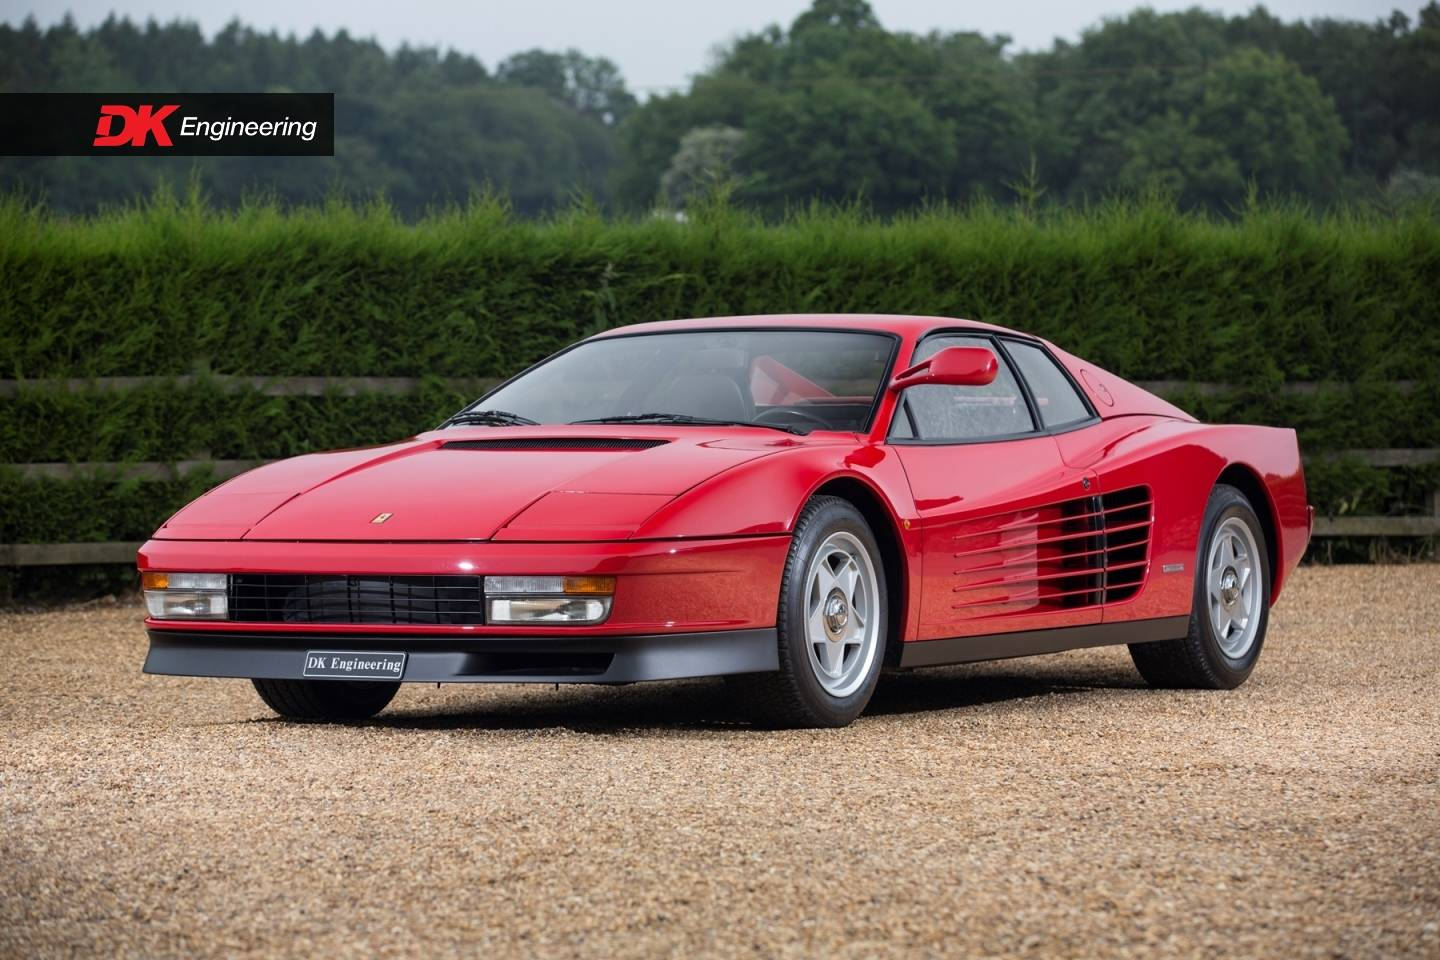 ferrari testarossa 1986 f r chf 193 39 740 kaufen. Black Bedroom Furniture Sets. Home Design Ideas